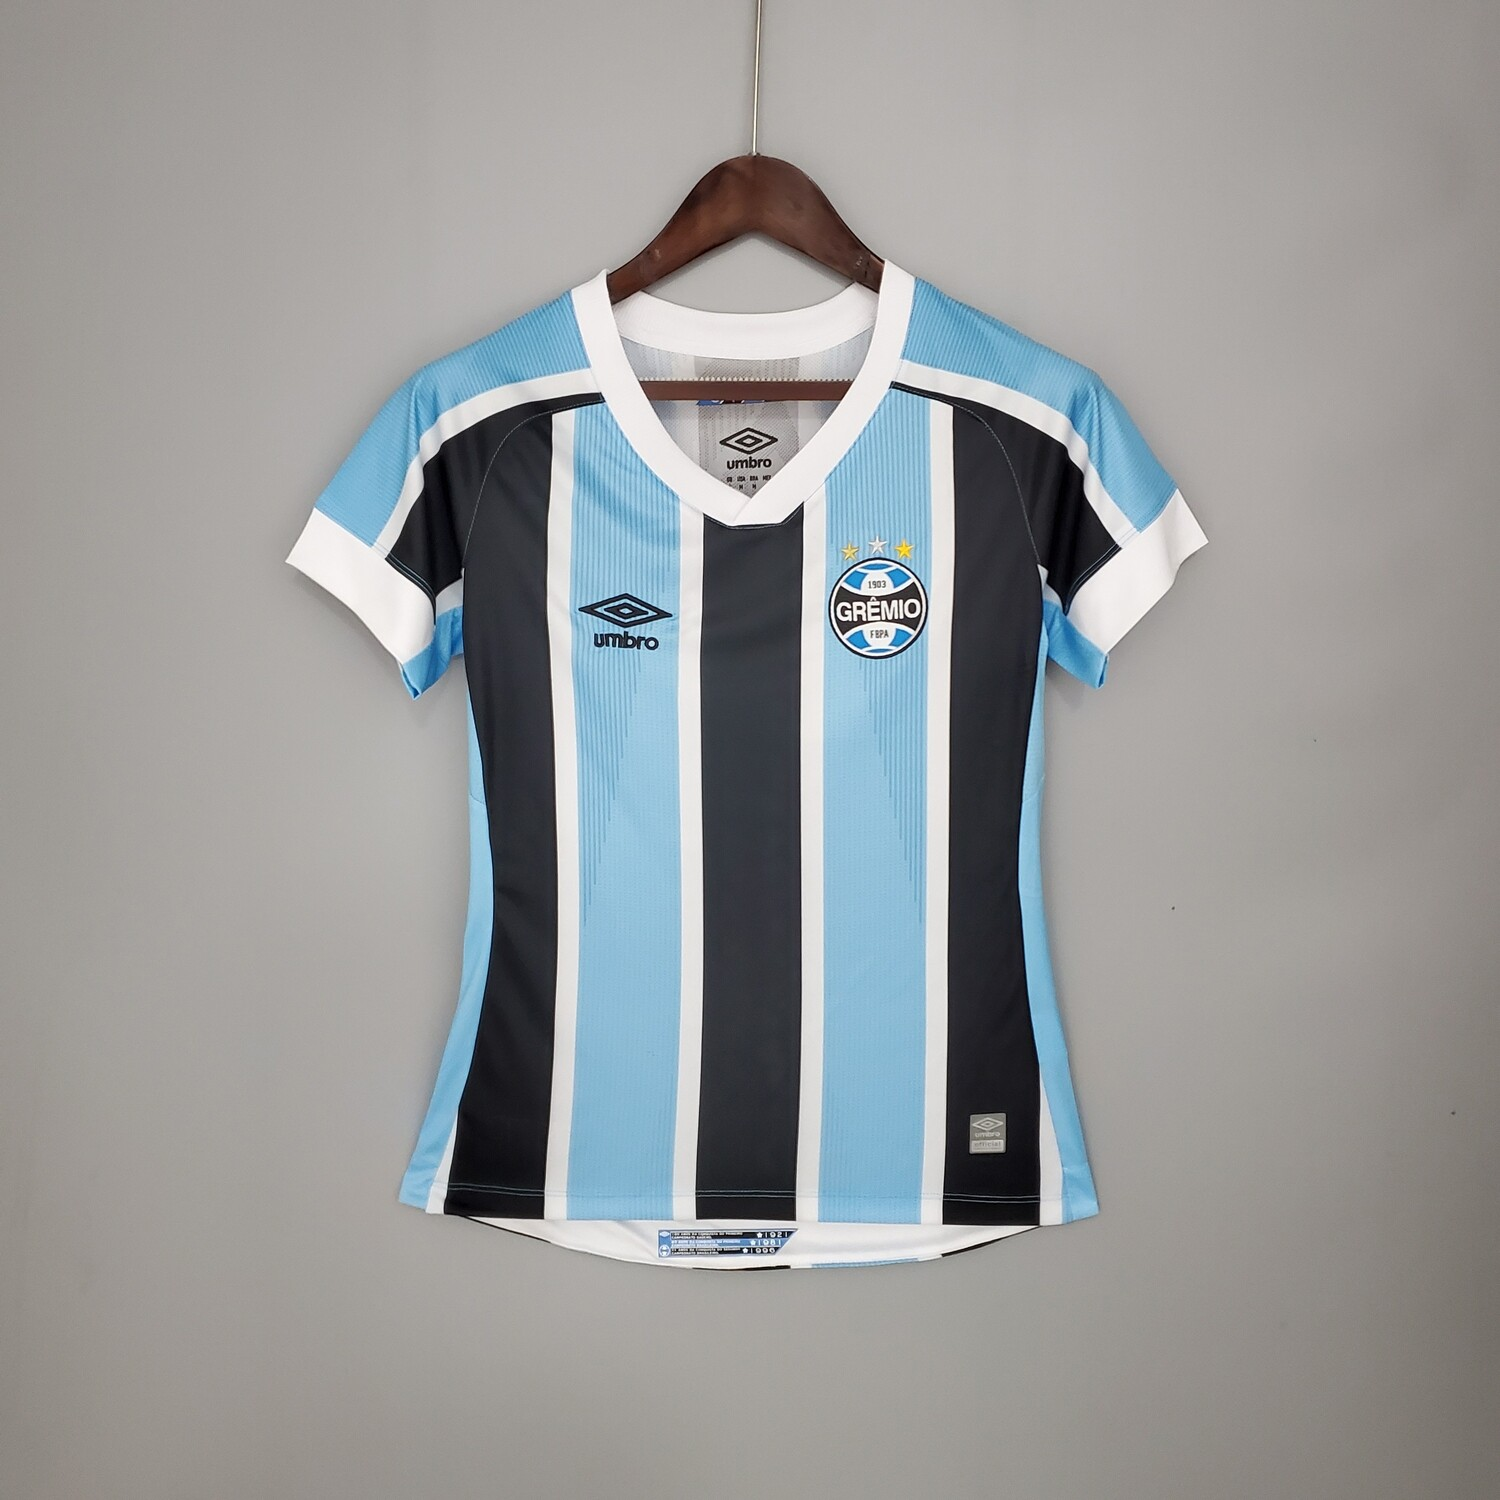 Gremio Home [Brazil] 2021 Women's Jersey [Pre-paid Only]